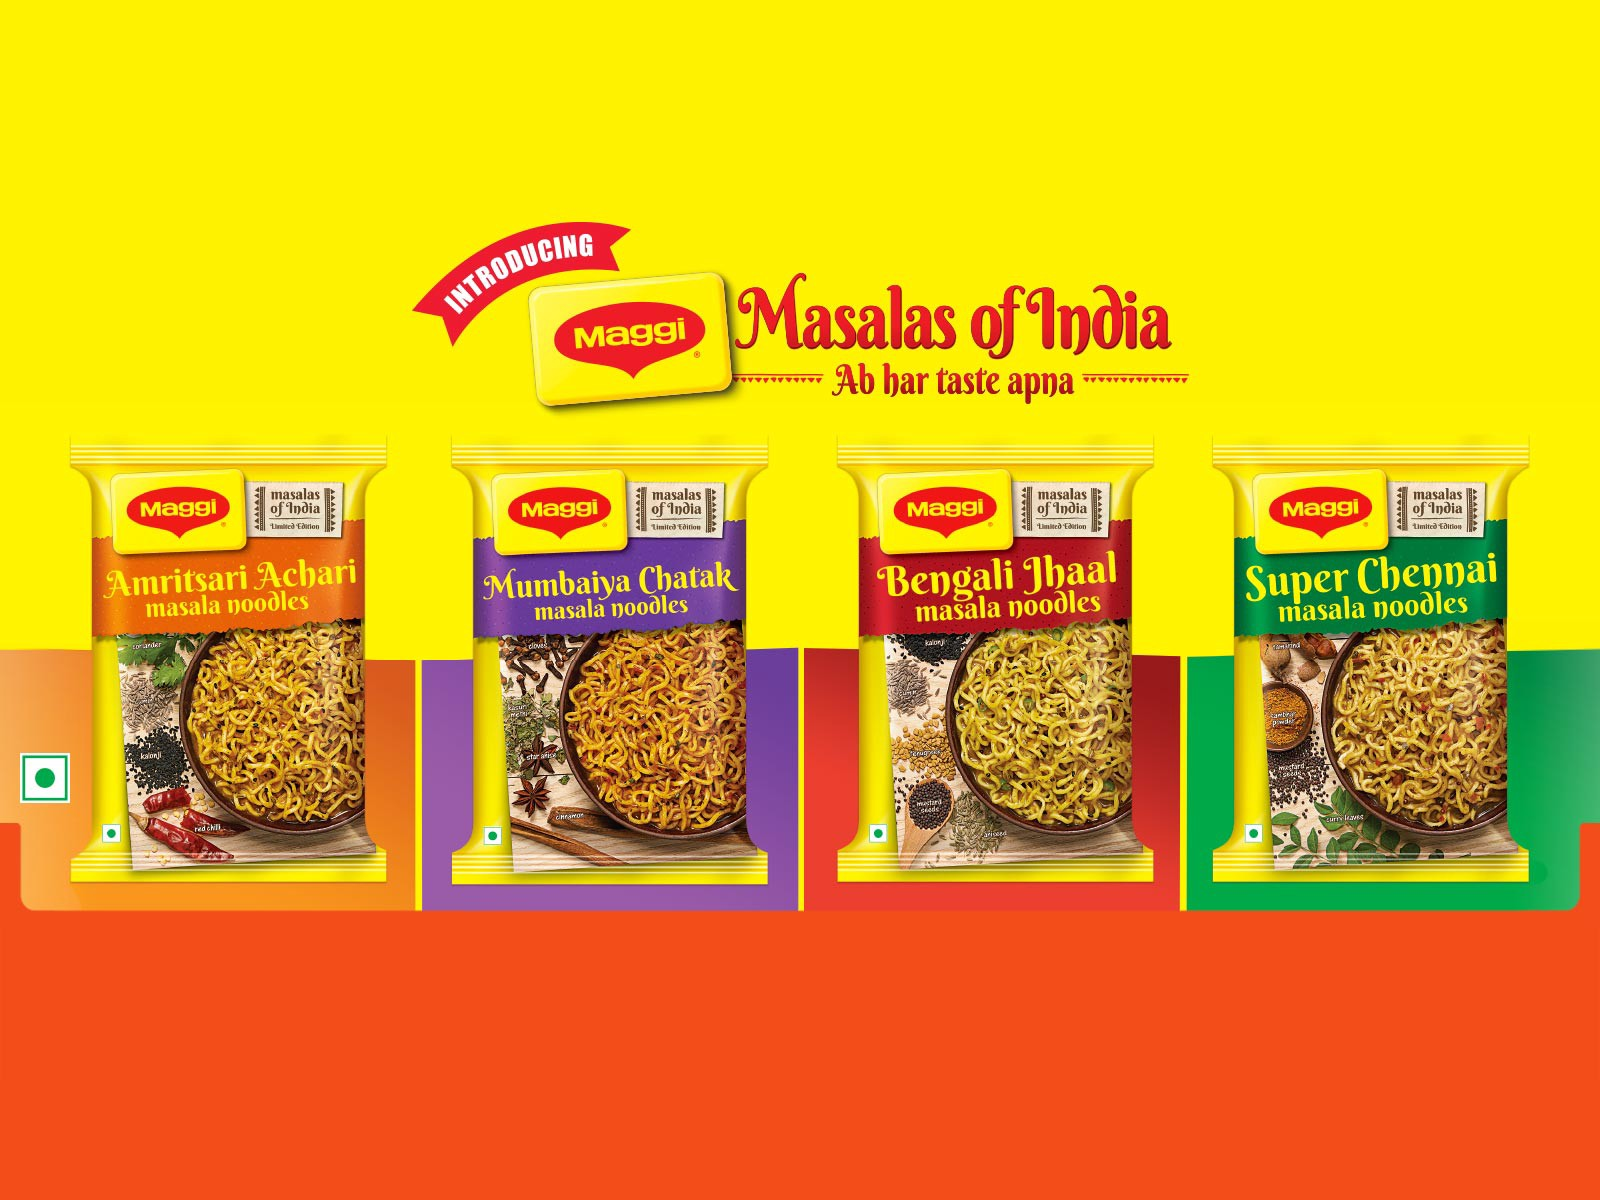 The Maggi Masalas Of India Box Is Now Exclusively Available On Paytm